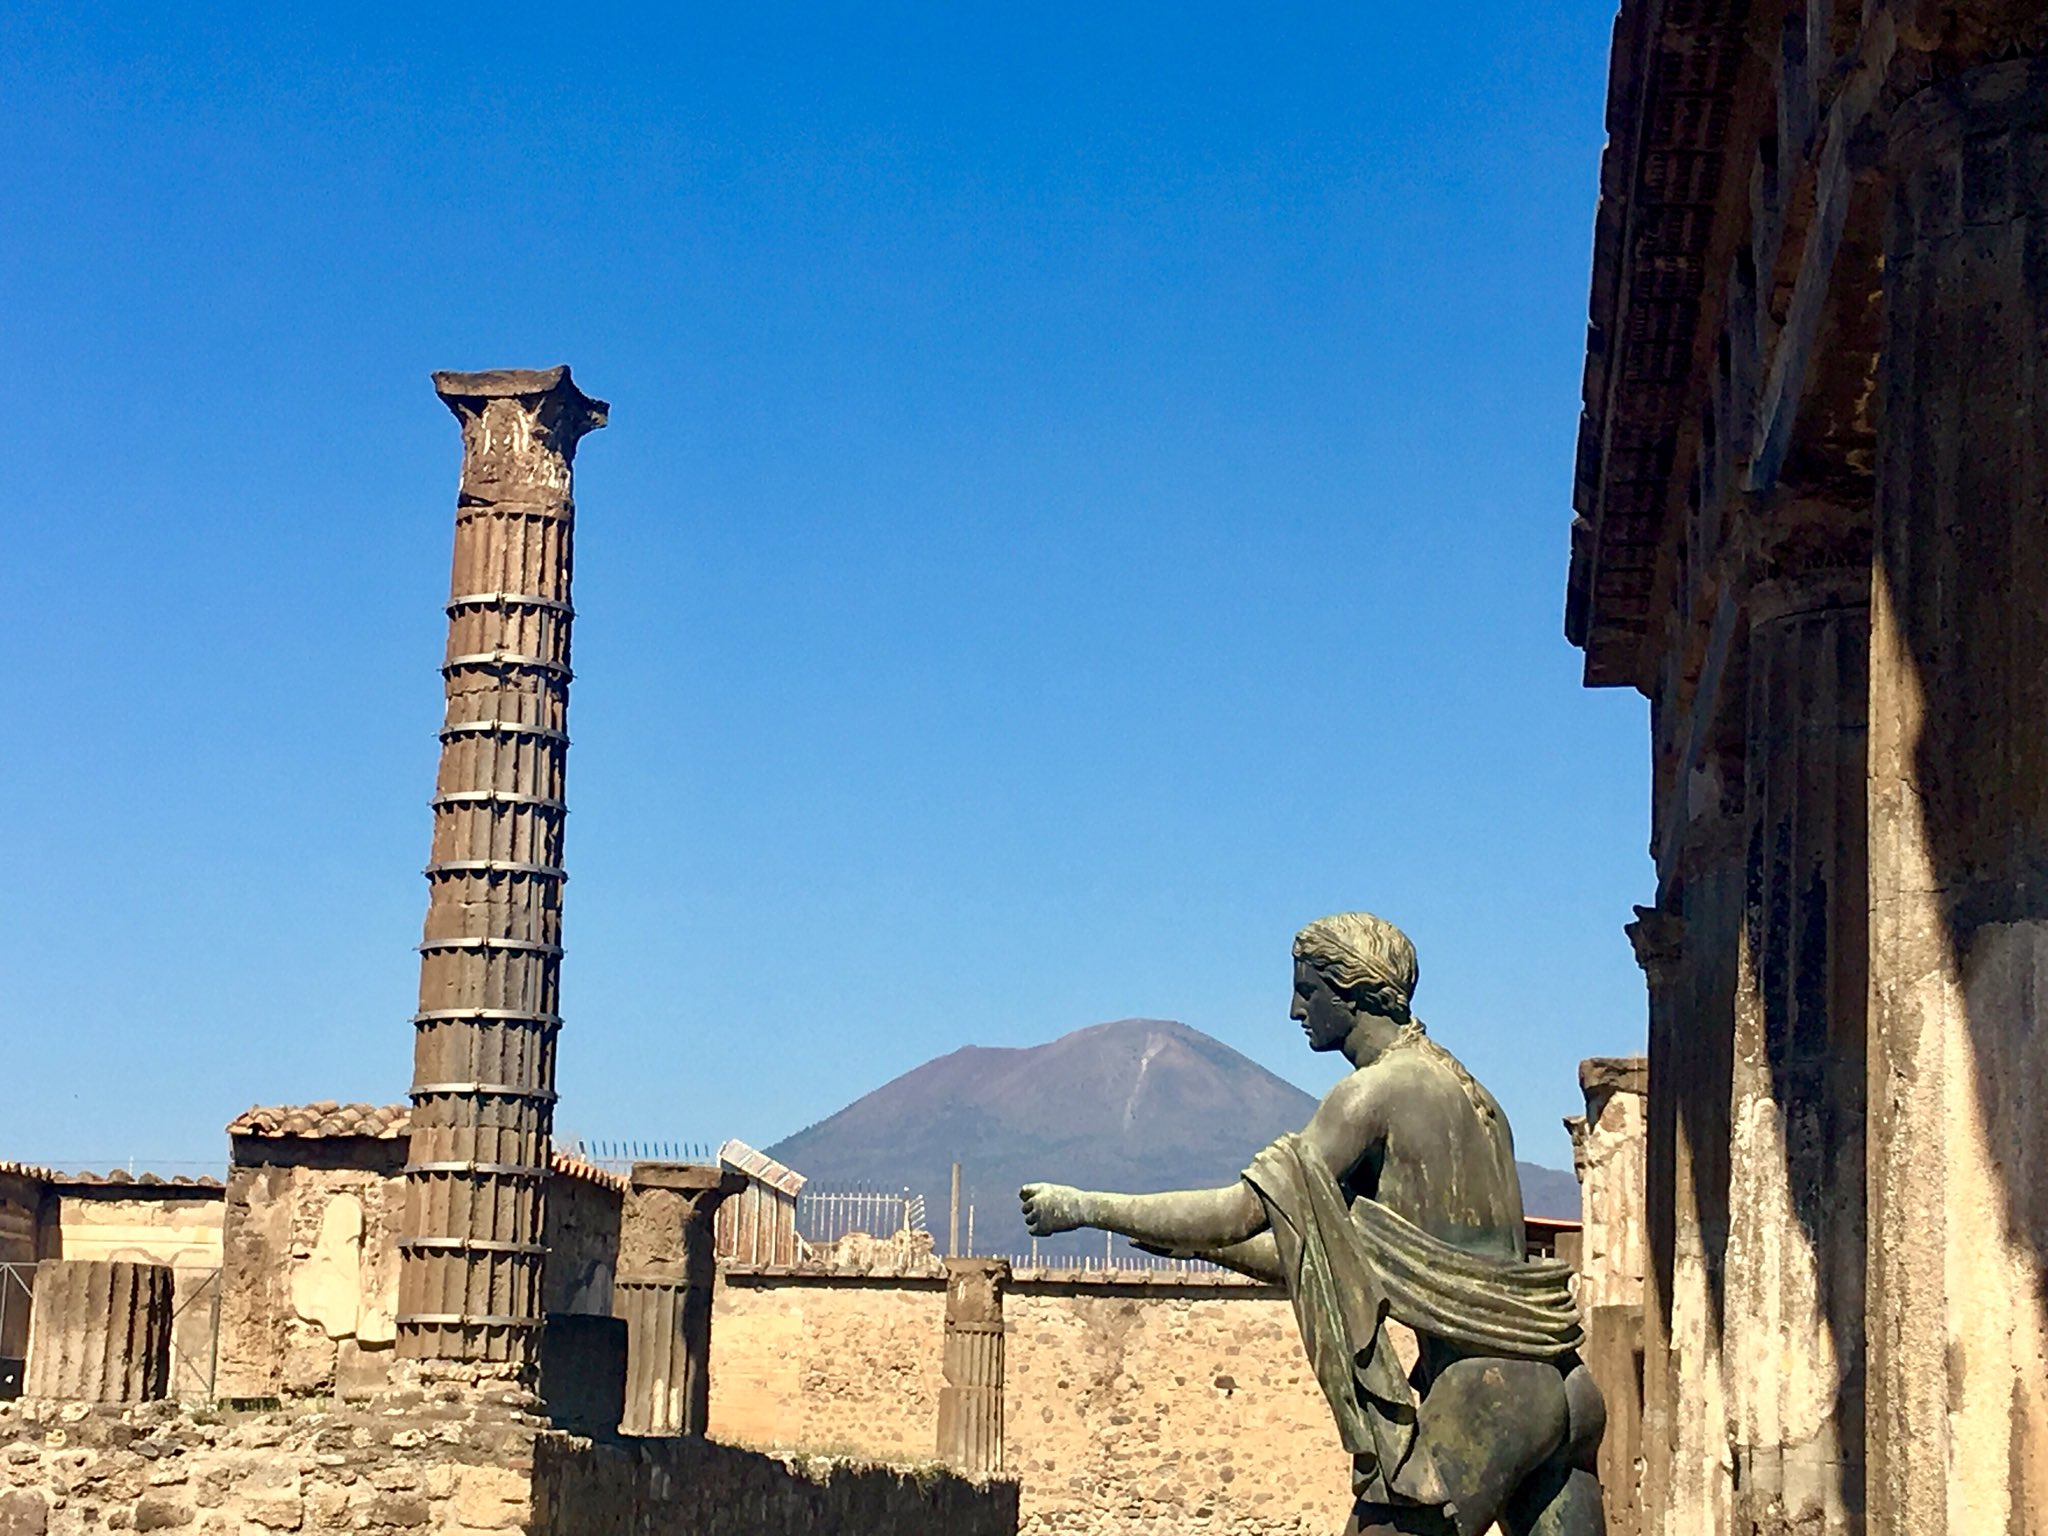 Odyssey Italy 2018, Pompeii was buried under meters of ash and pumice after the catastrophic eruption of Mount Vesuvius in 79 A.D. The preserved site features excavated ruins. https://t.co/djpXYc97kZ